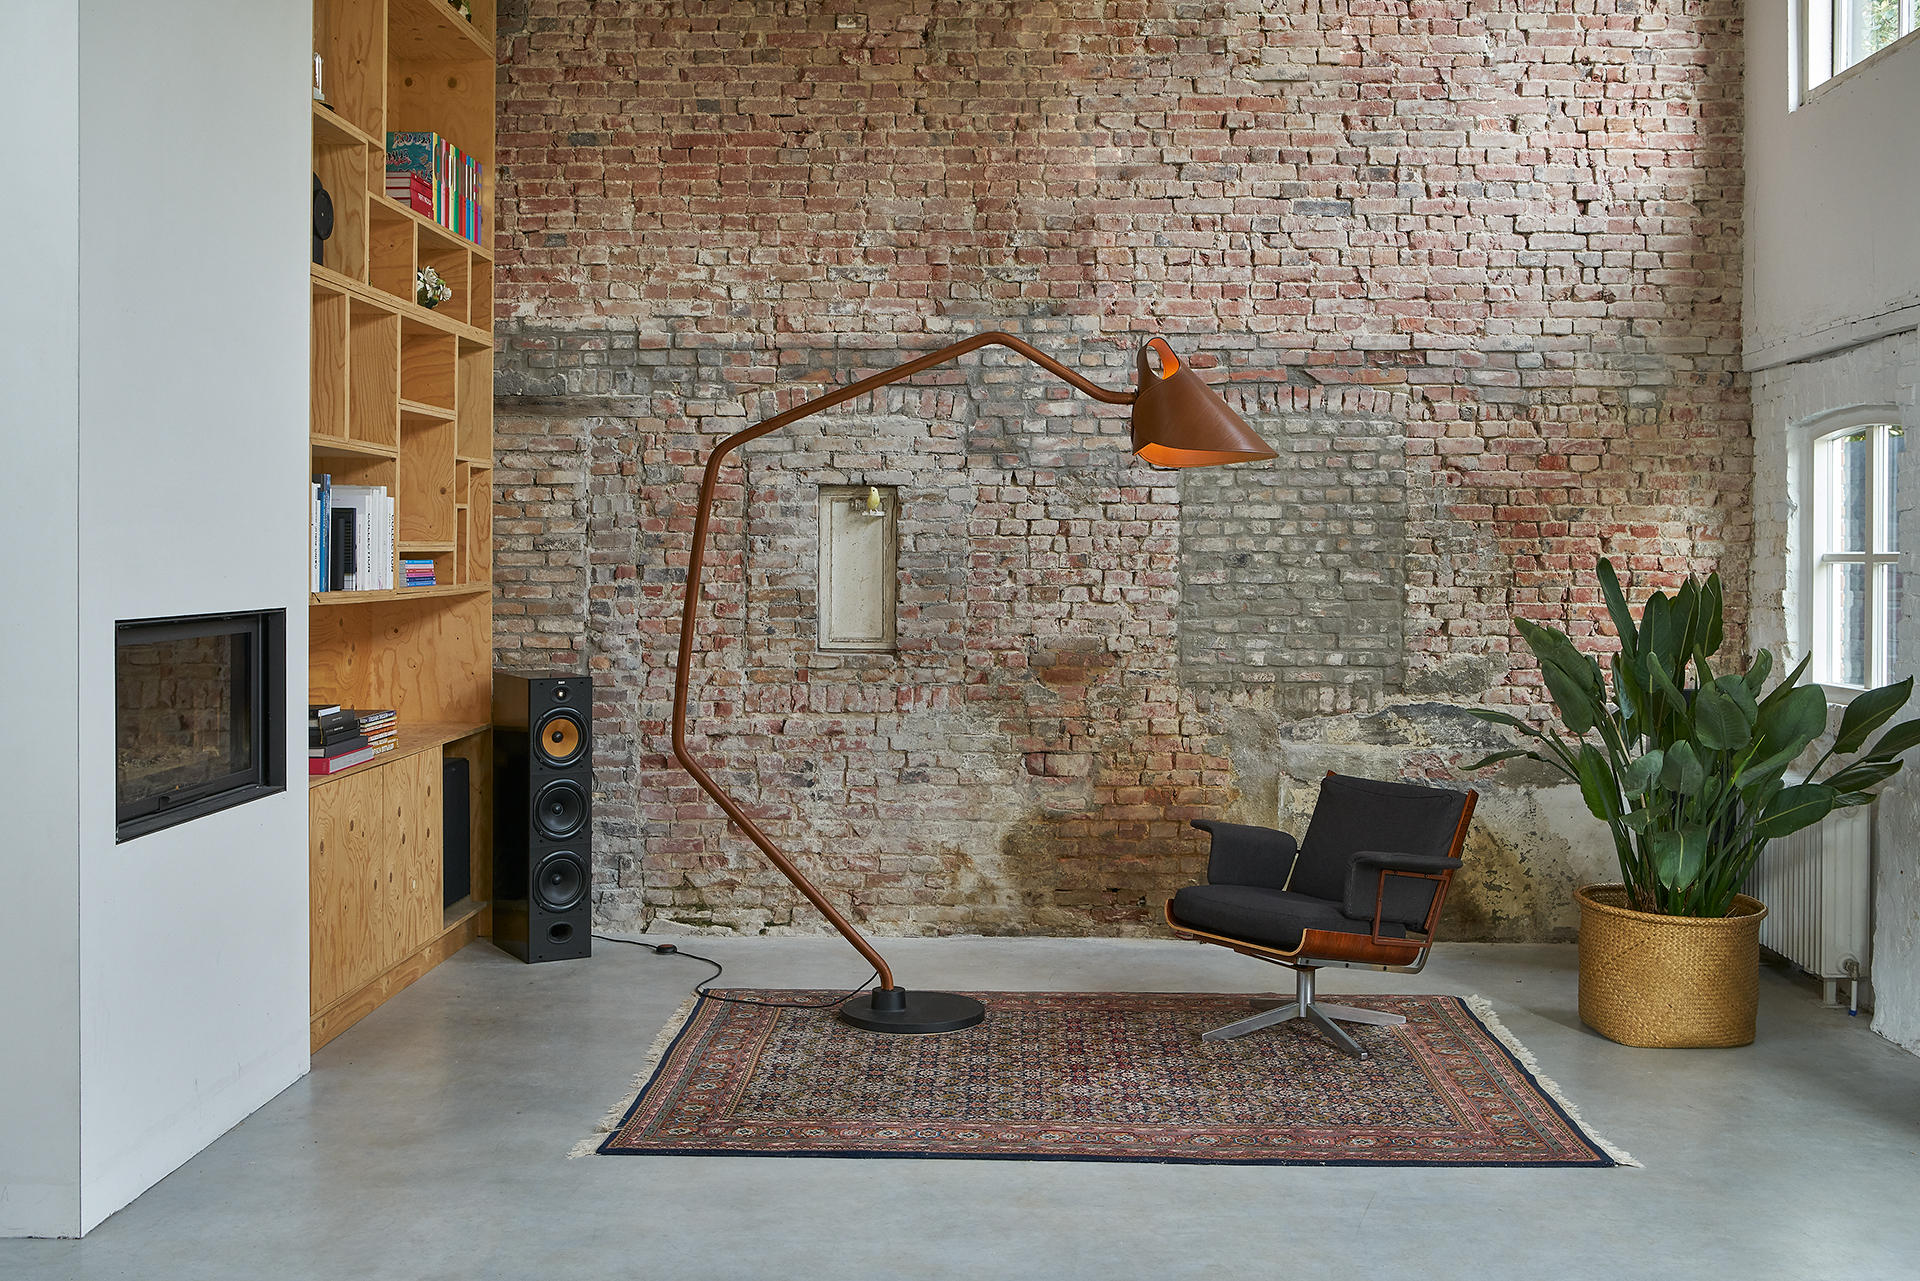 Mrs q floor lamp general lighting from jacco maris architonic mrs q floor lamp by jacco maris aloadofball Choice Image